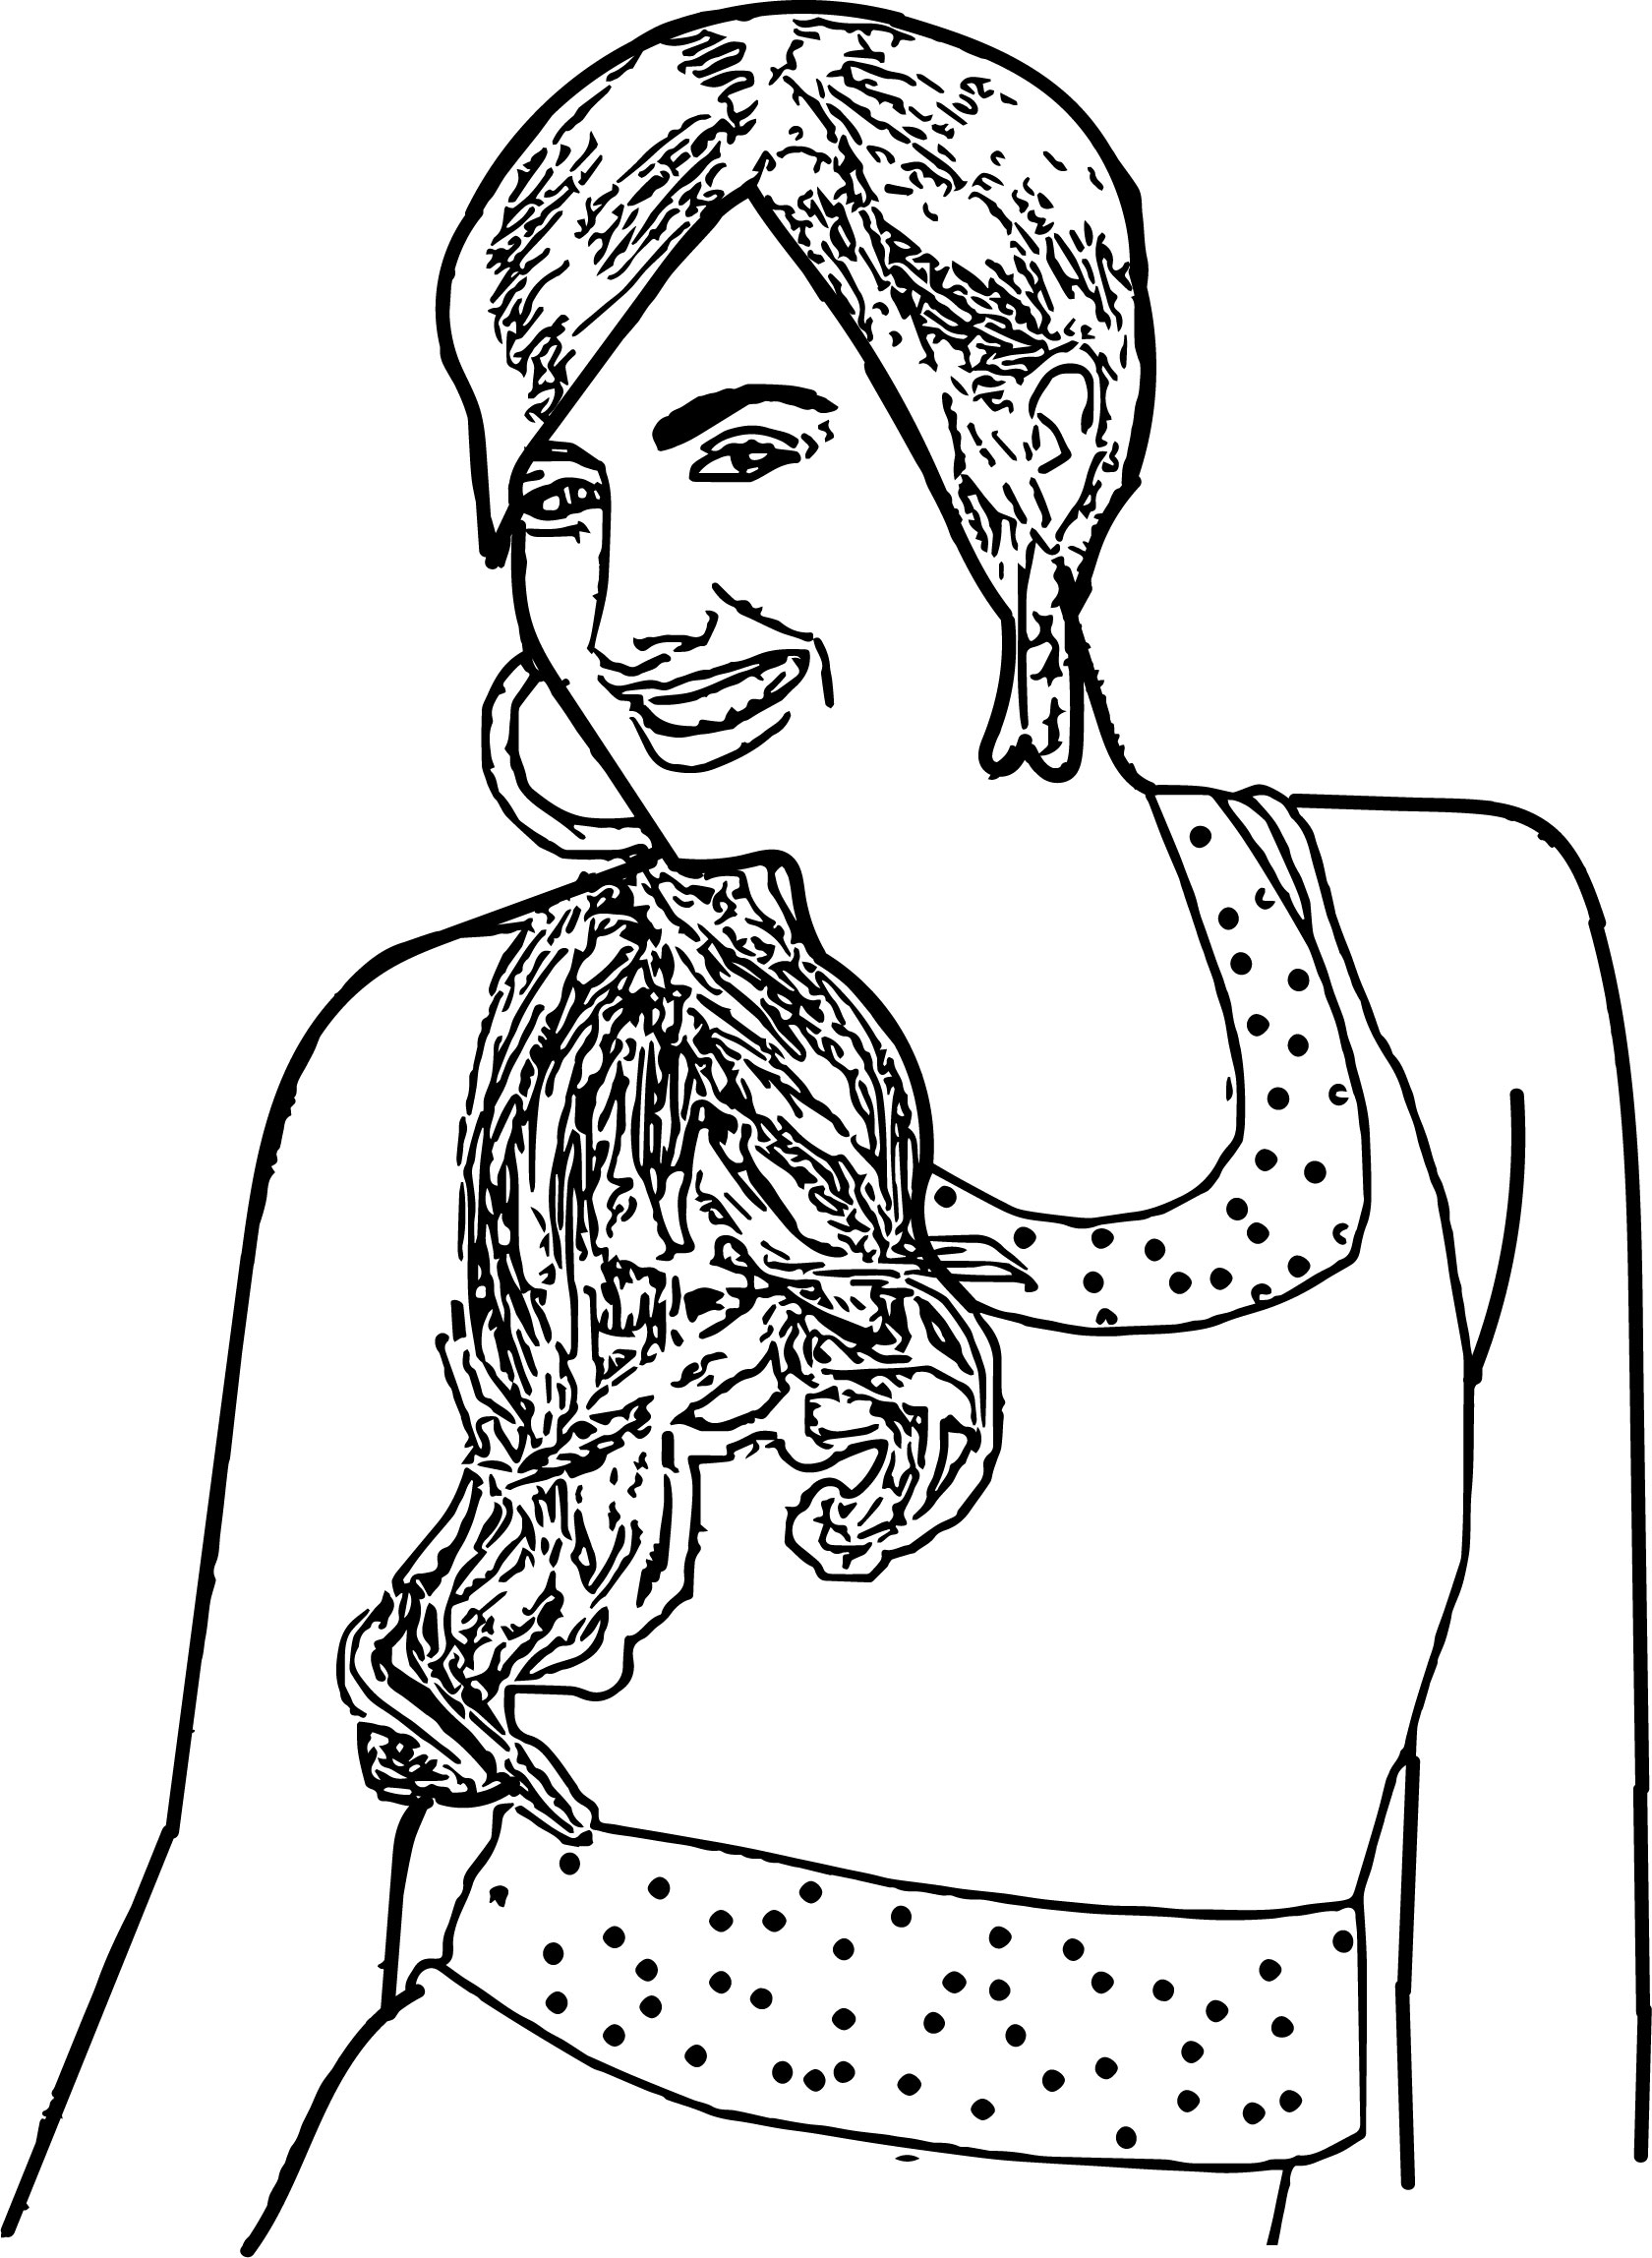 High School Musical Characters Sharpay Evans Coloring Pages ...